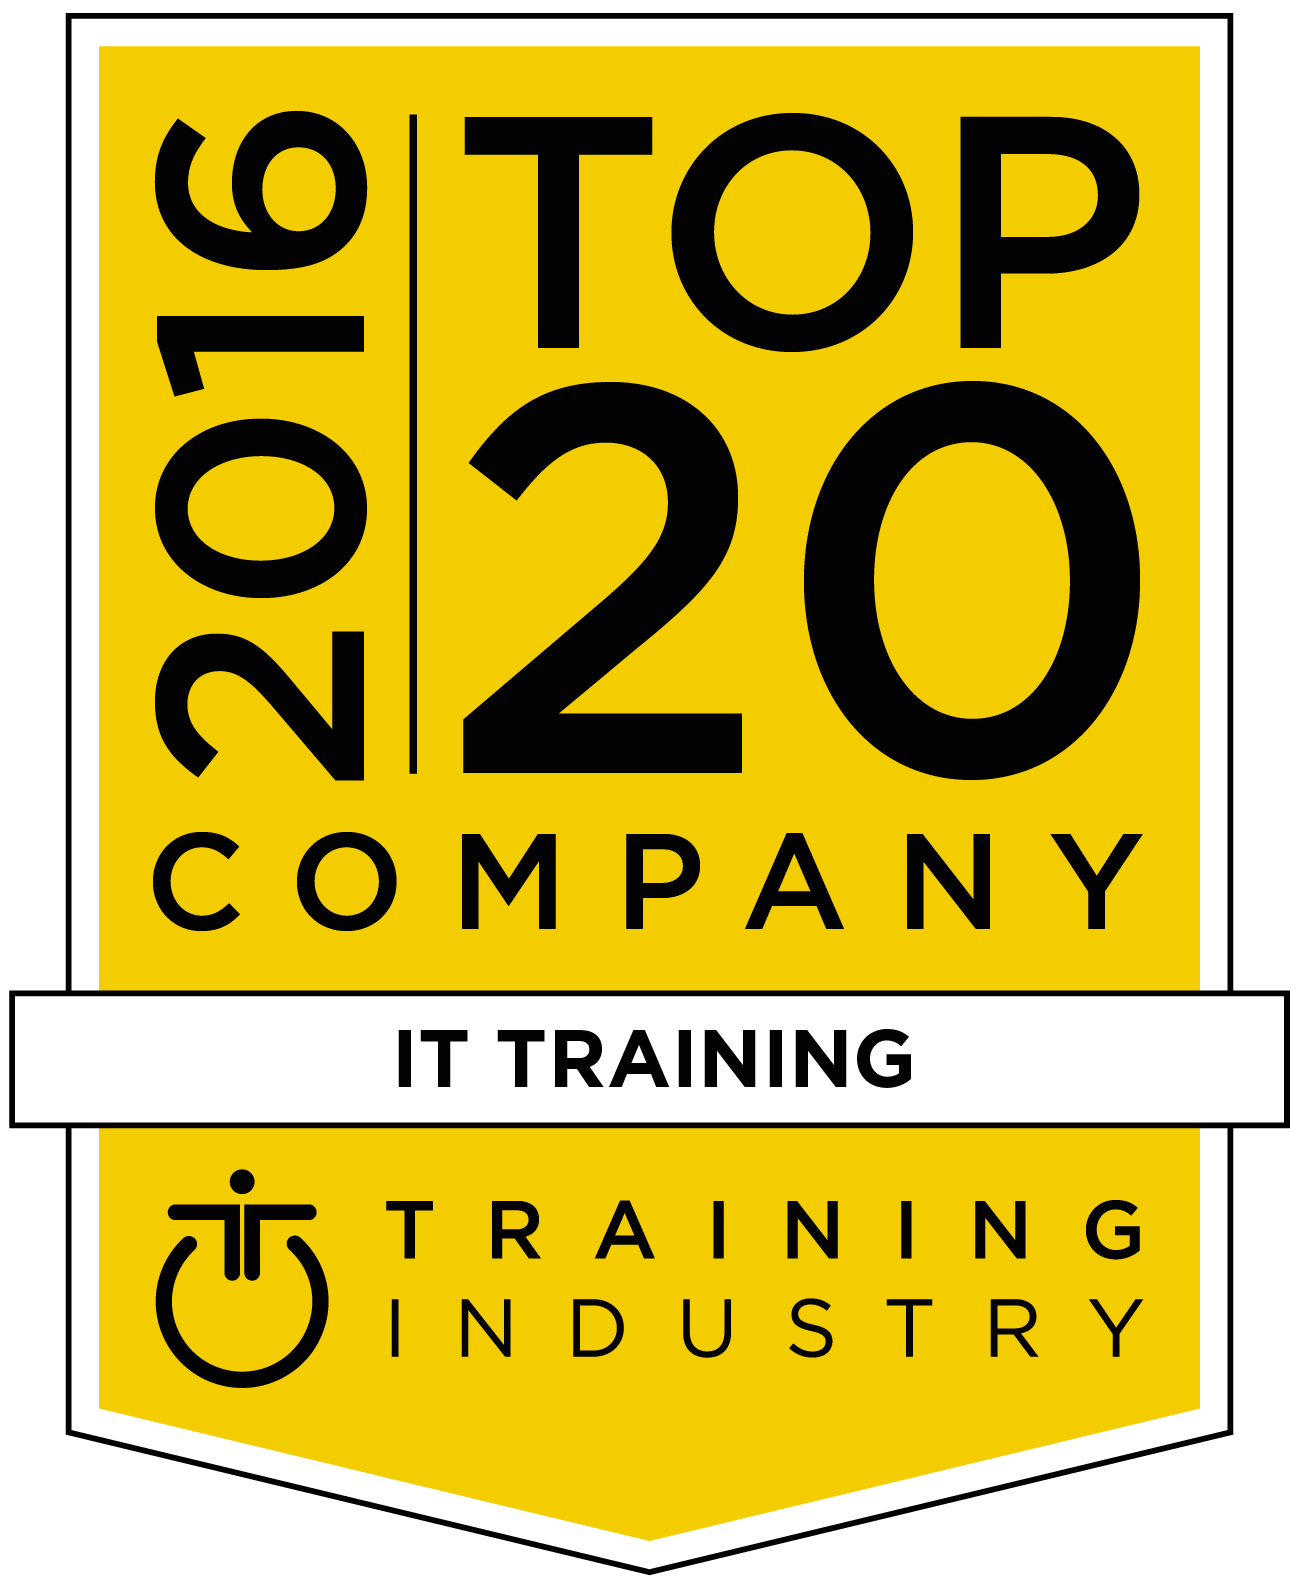 2016 Top 20 Company IT Training from Training Industry